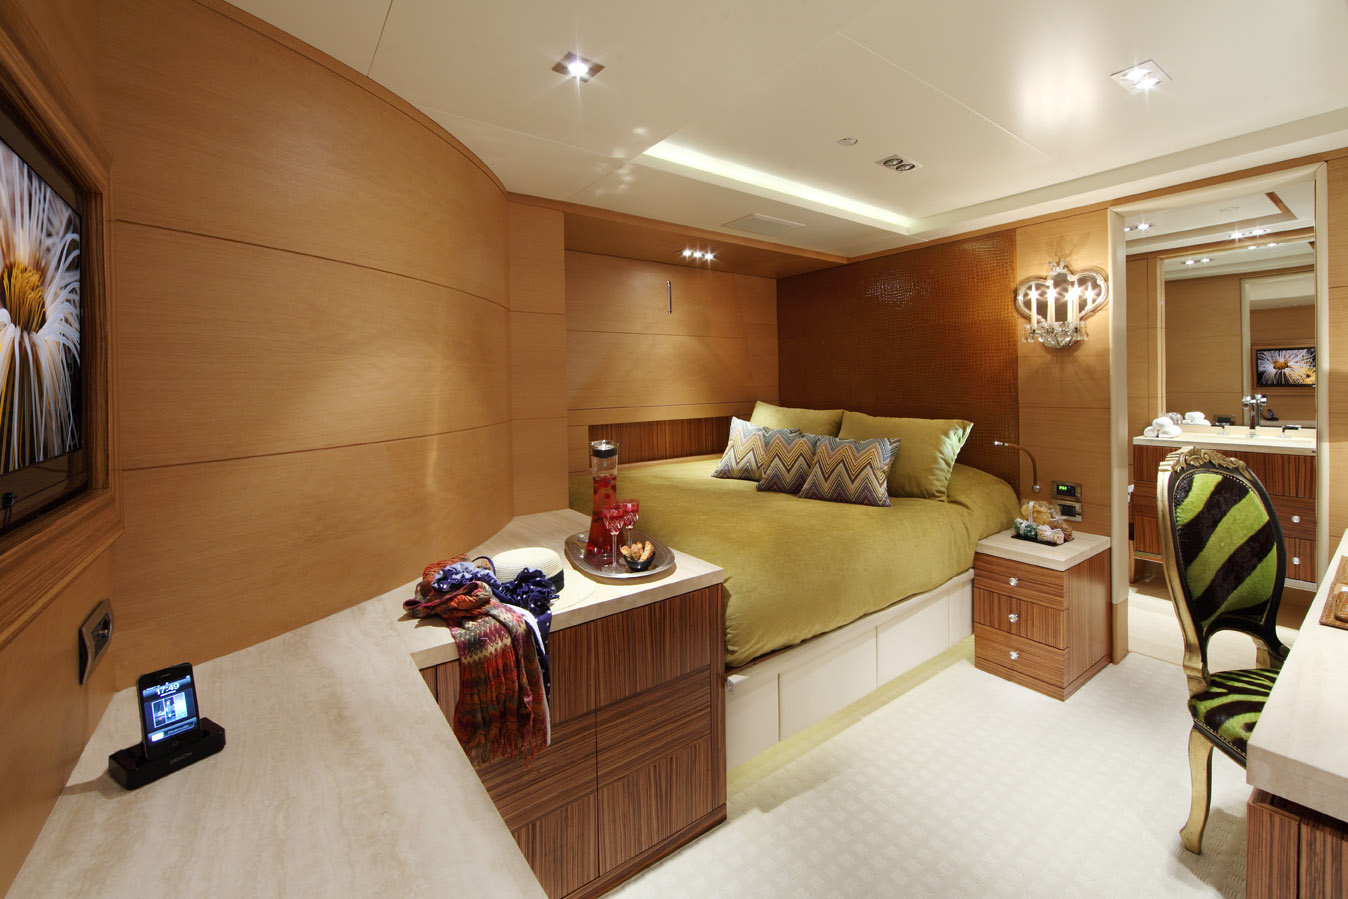 charter-benetti-vision-145-told-u-so-24